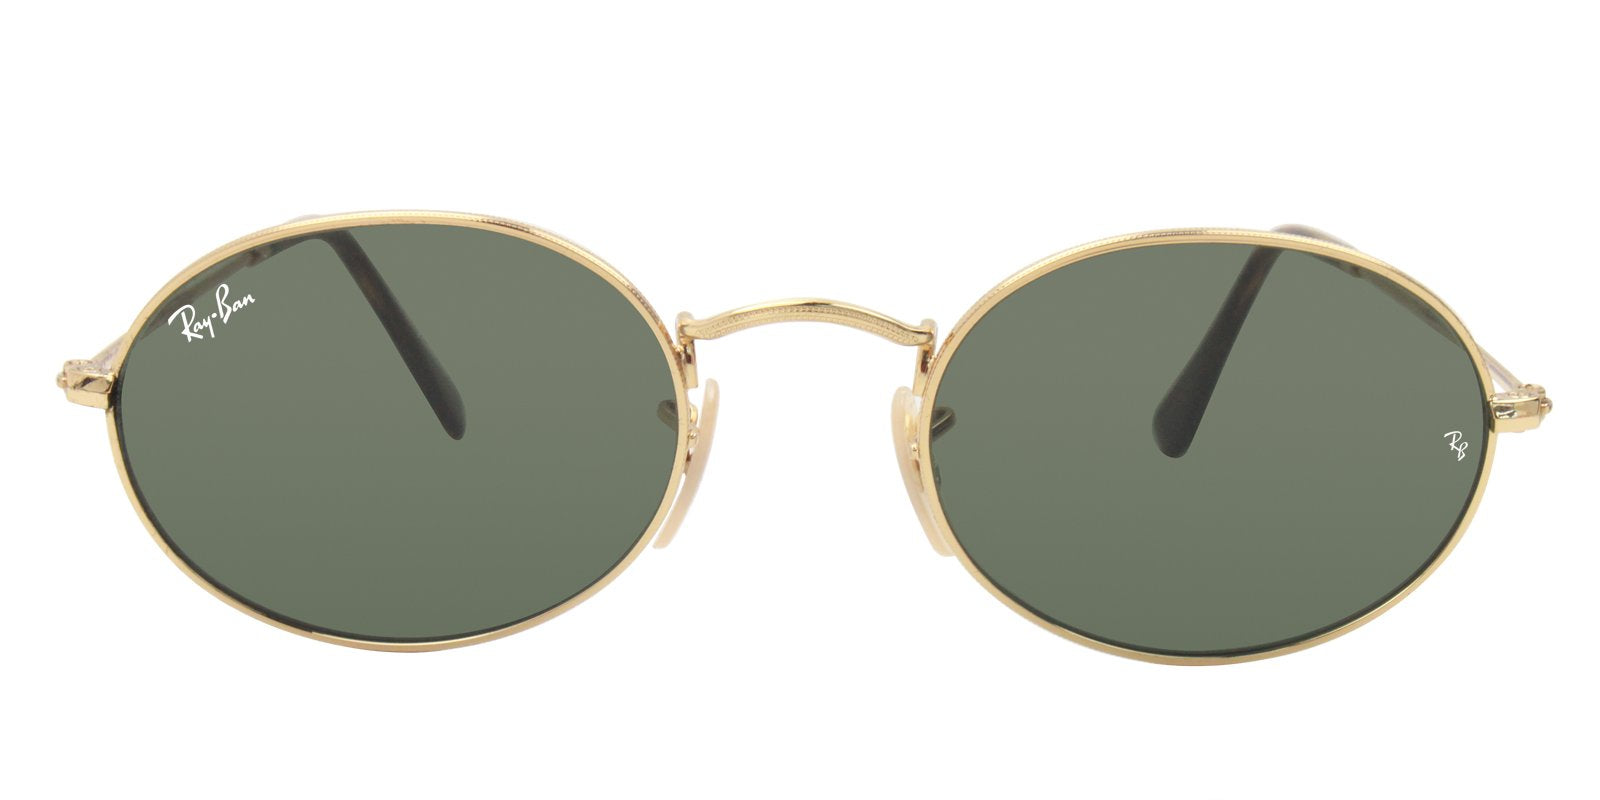 Ray Ban - RB3547N Gold Oval Unisex Sunglasses - 51mm-Sunglasses-Designer Eyes